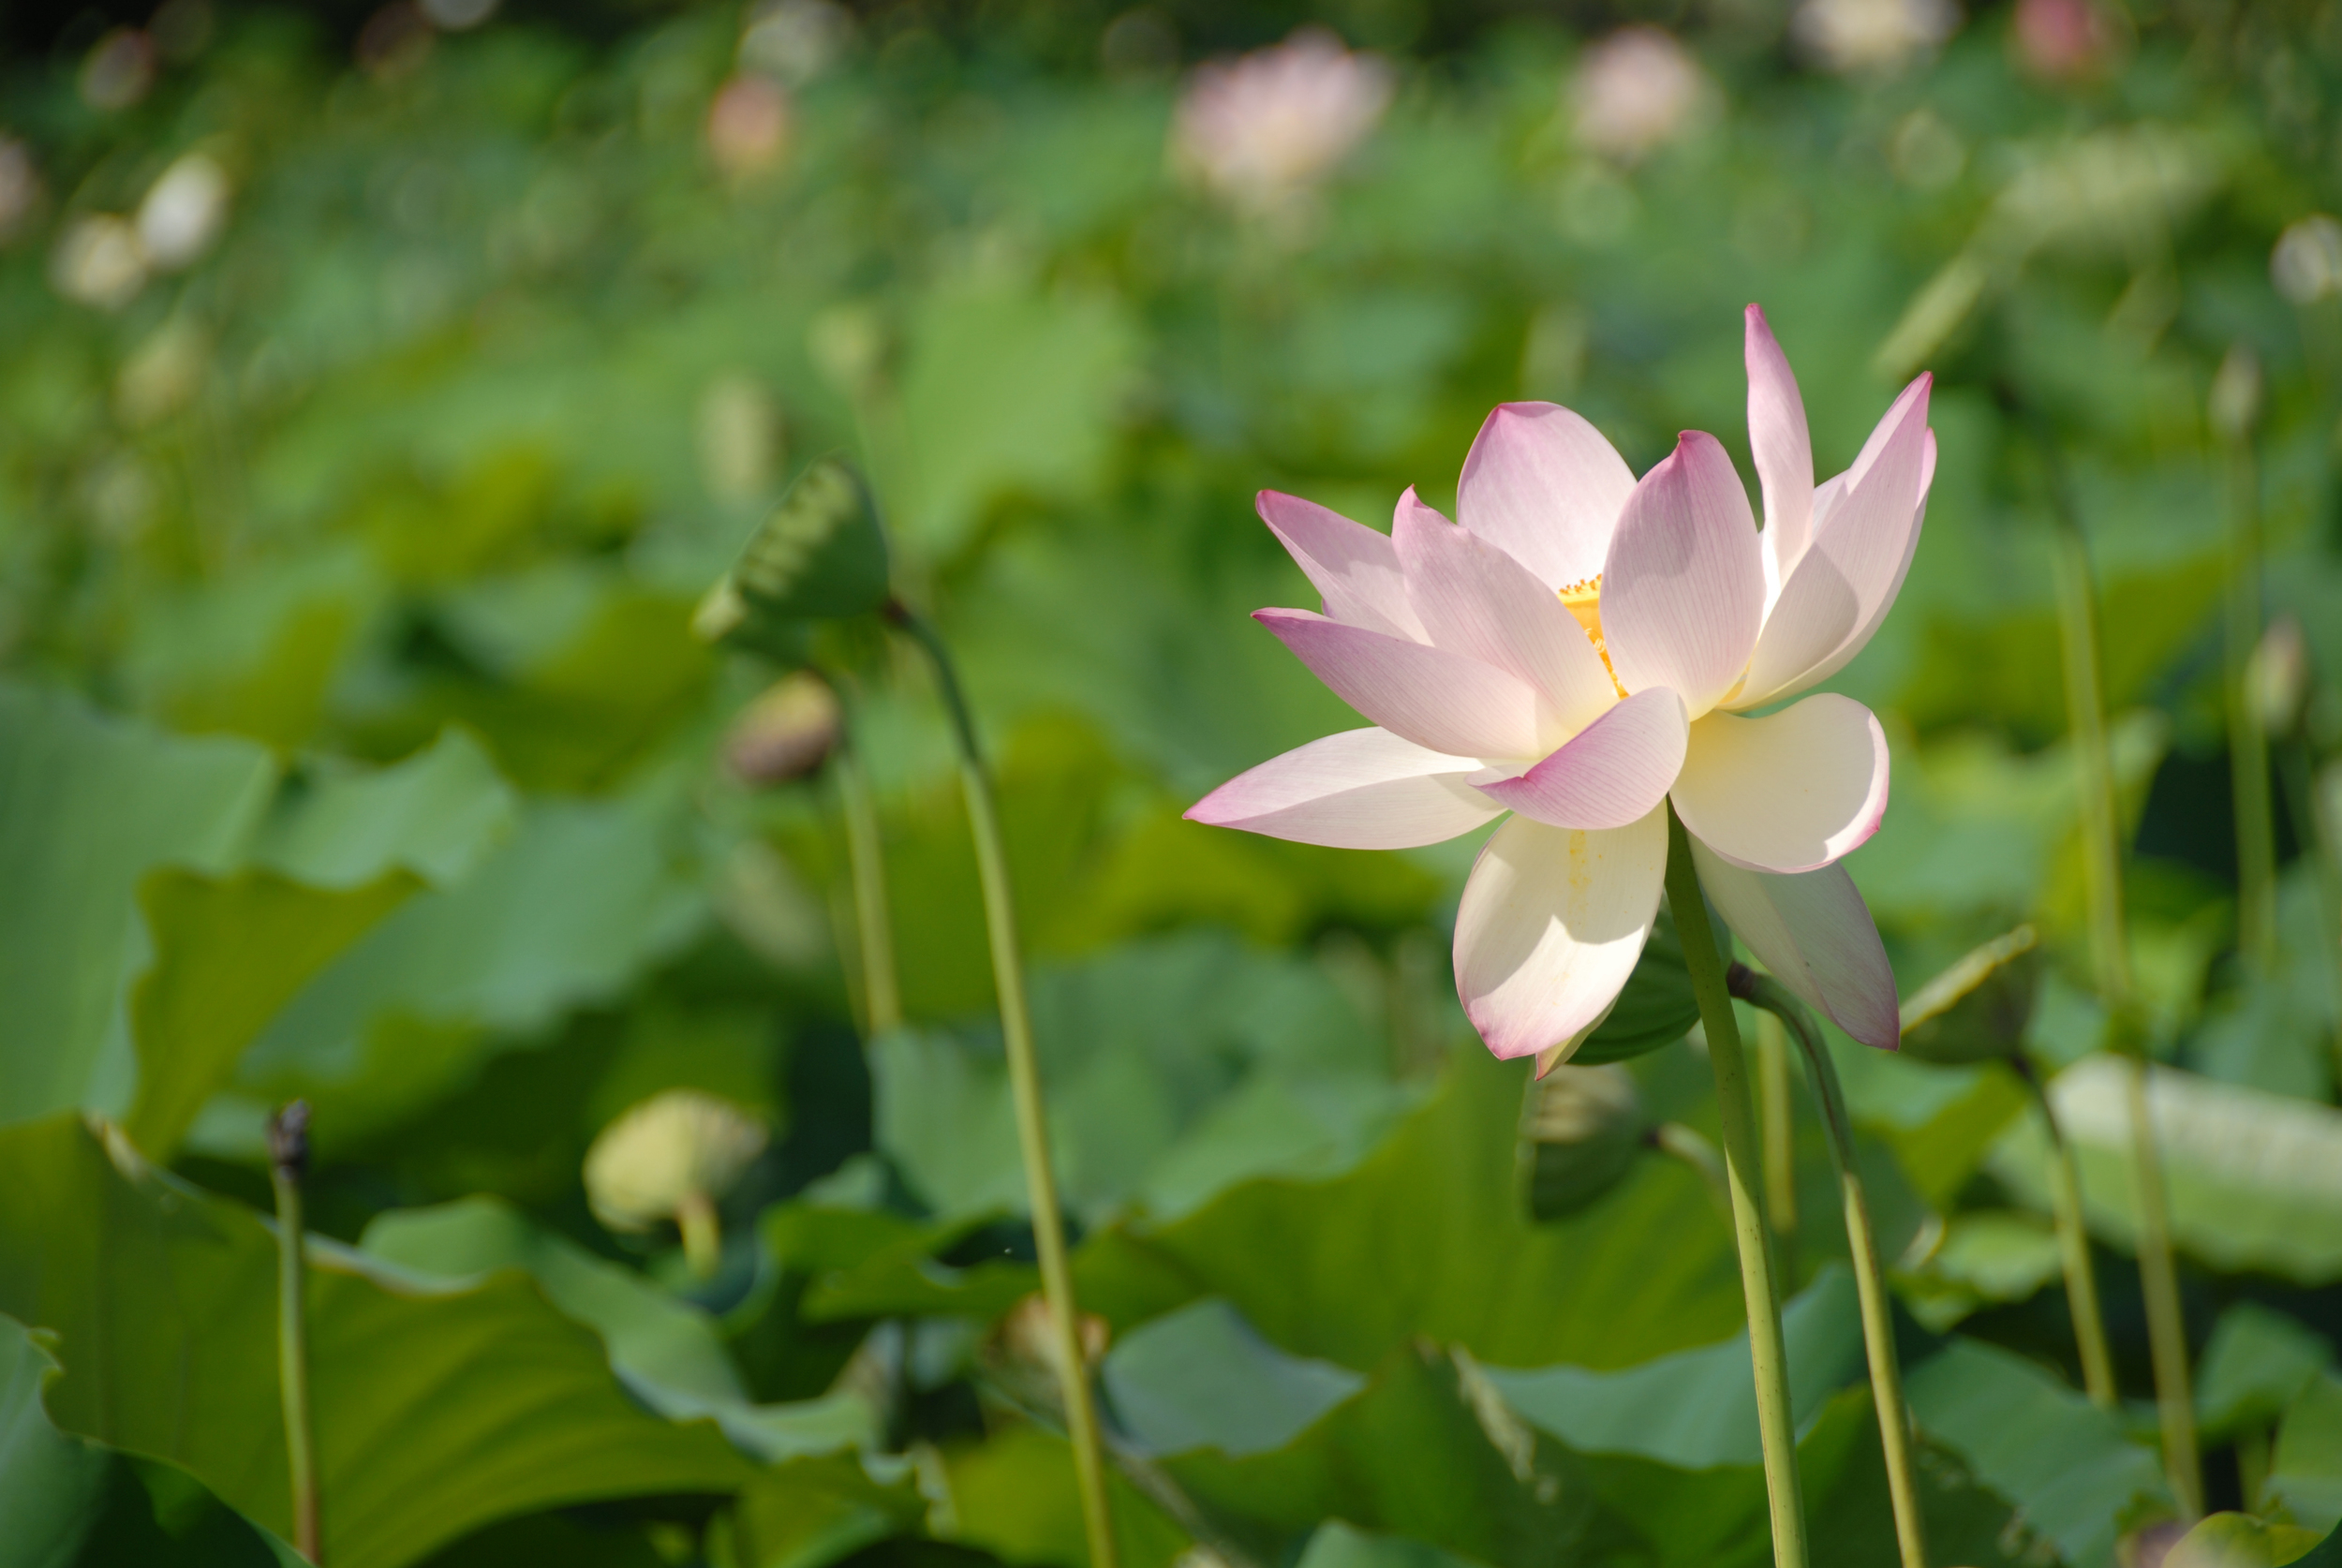 Field of Lotus Flowers